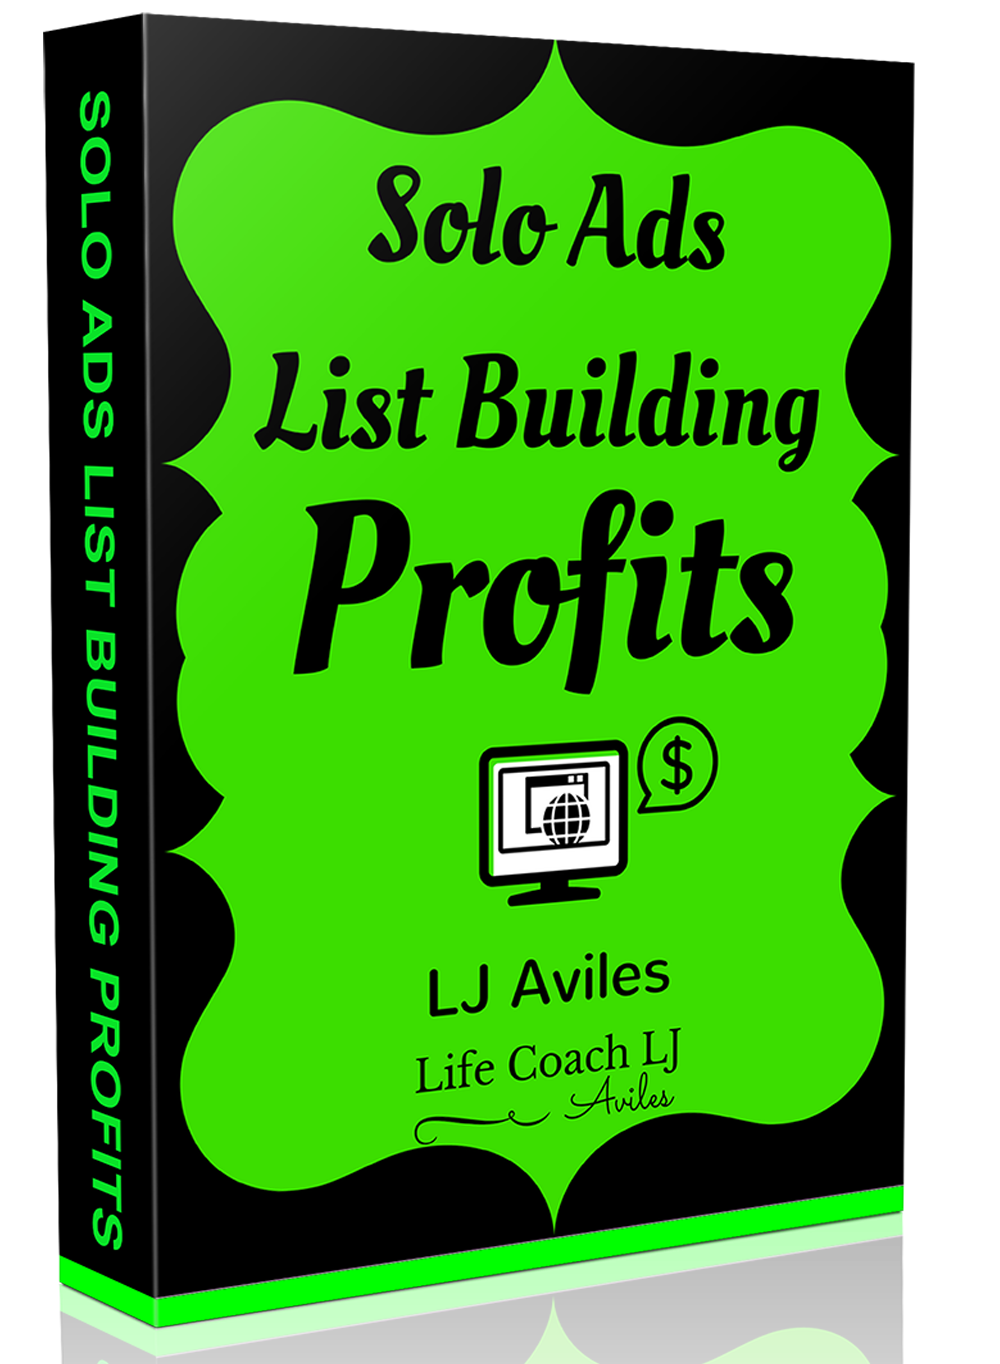 Solo Ads List Building Profits Box